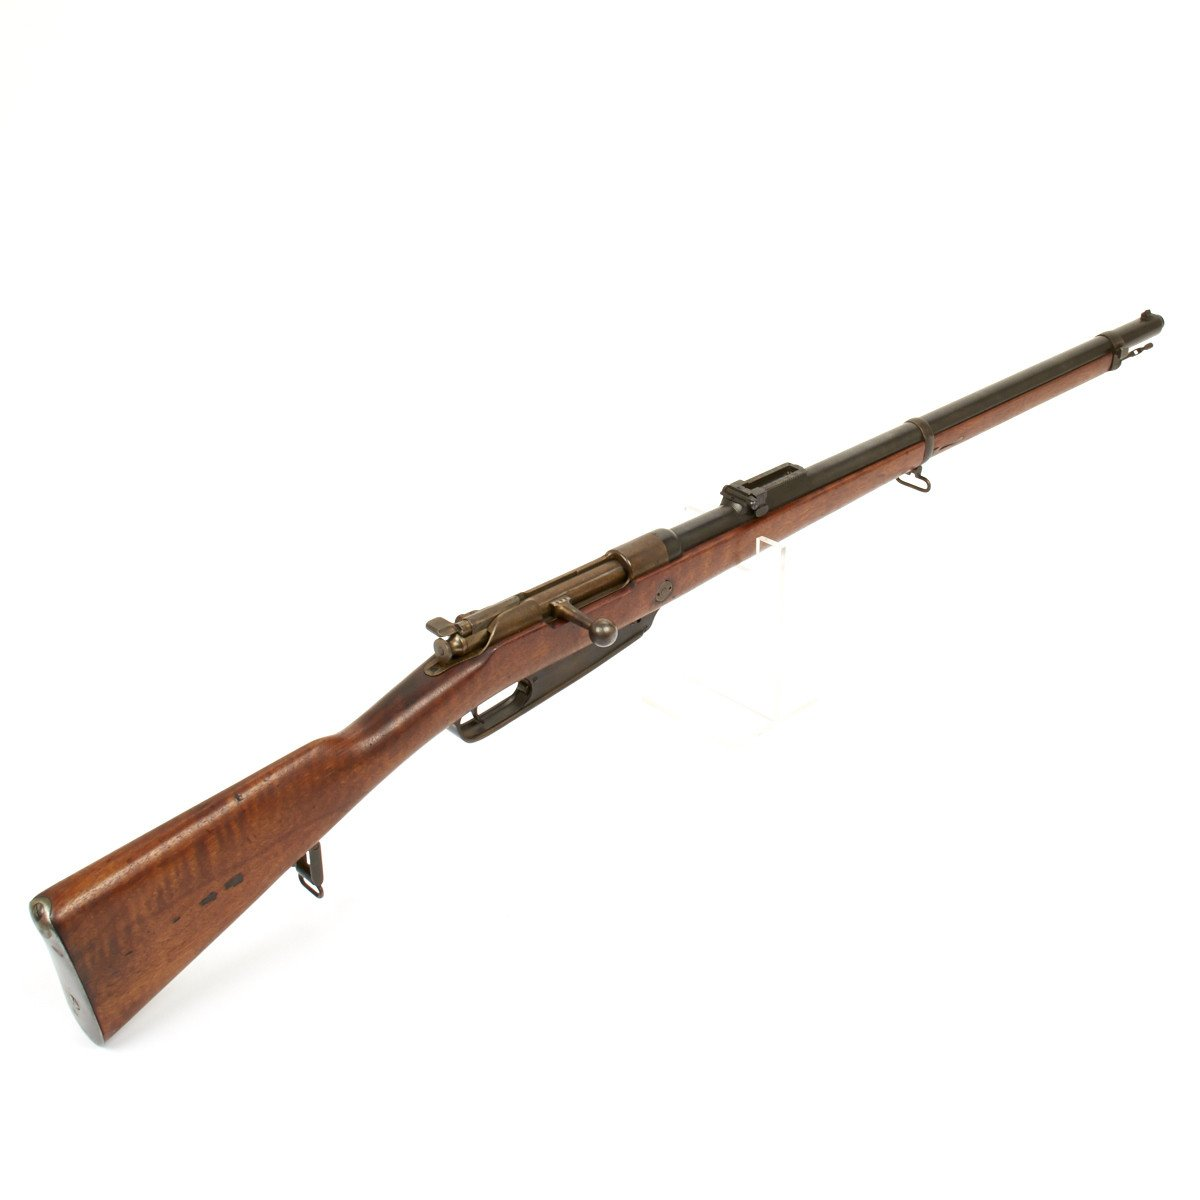 Original German Mauser 1888 Commission Infantry Rifle by Steyr